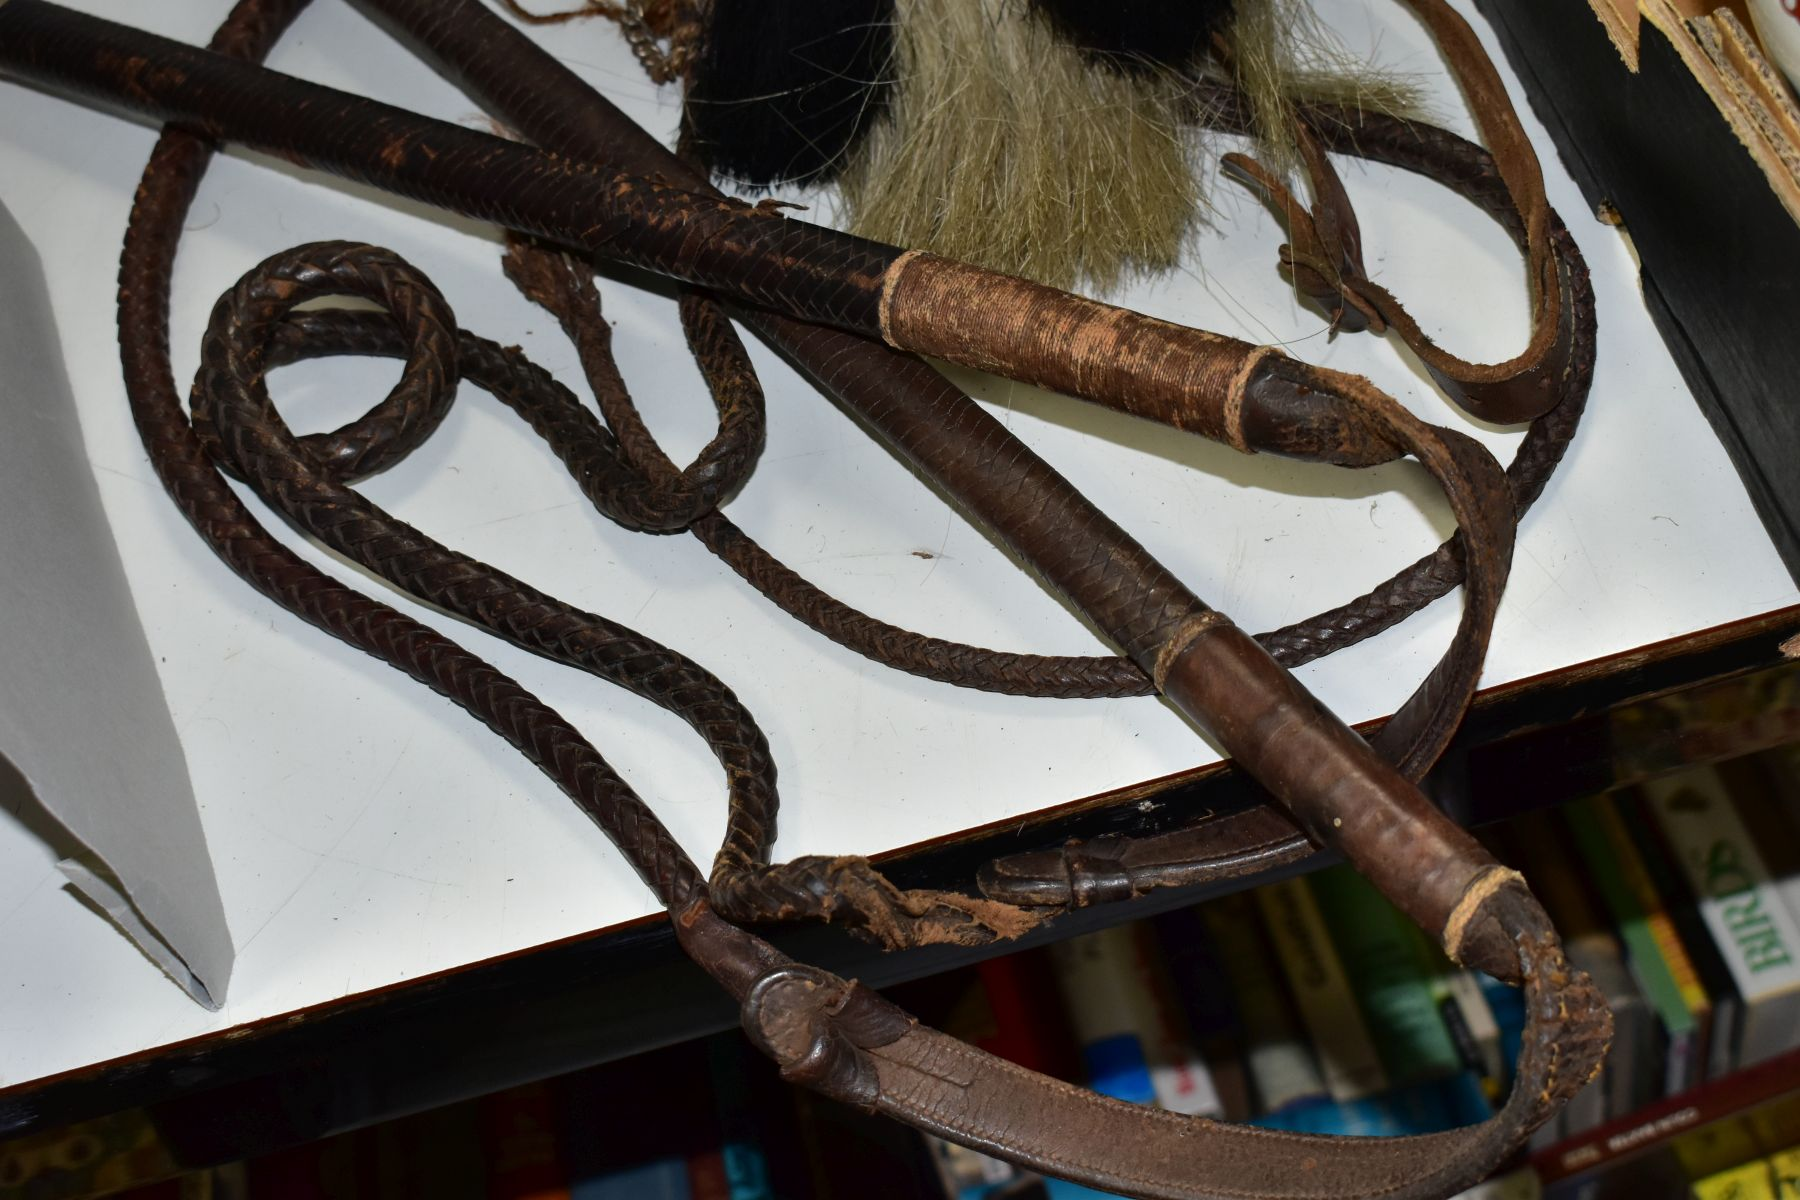 TWO LEATHER WHIPS, bone handles, metal mounts one with engraved coronet, worn condition, with a semi - Image 5 of 6